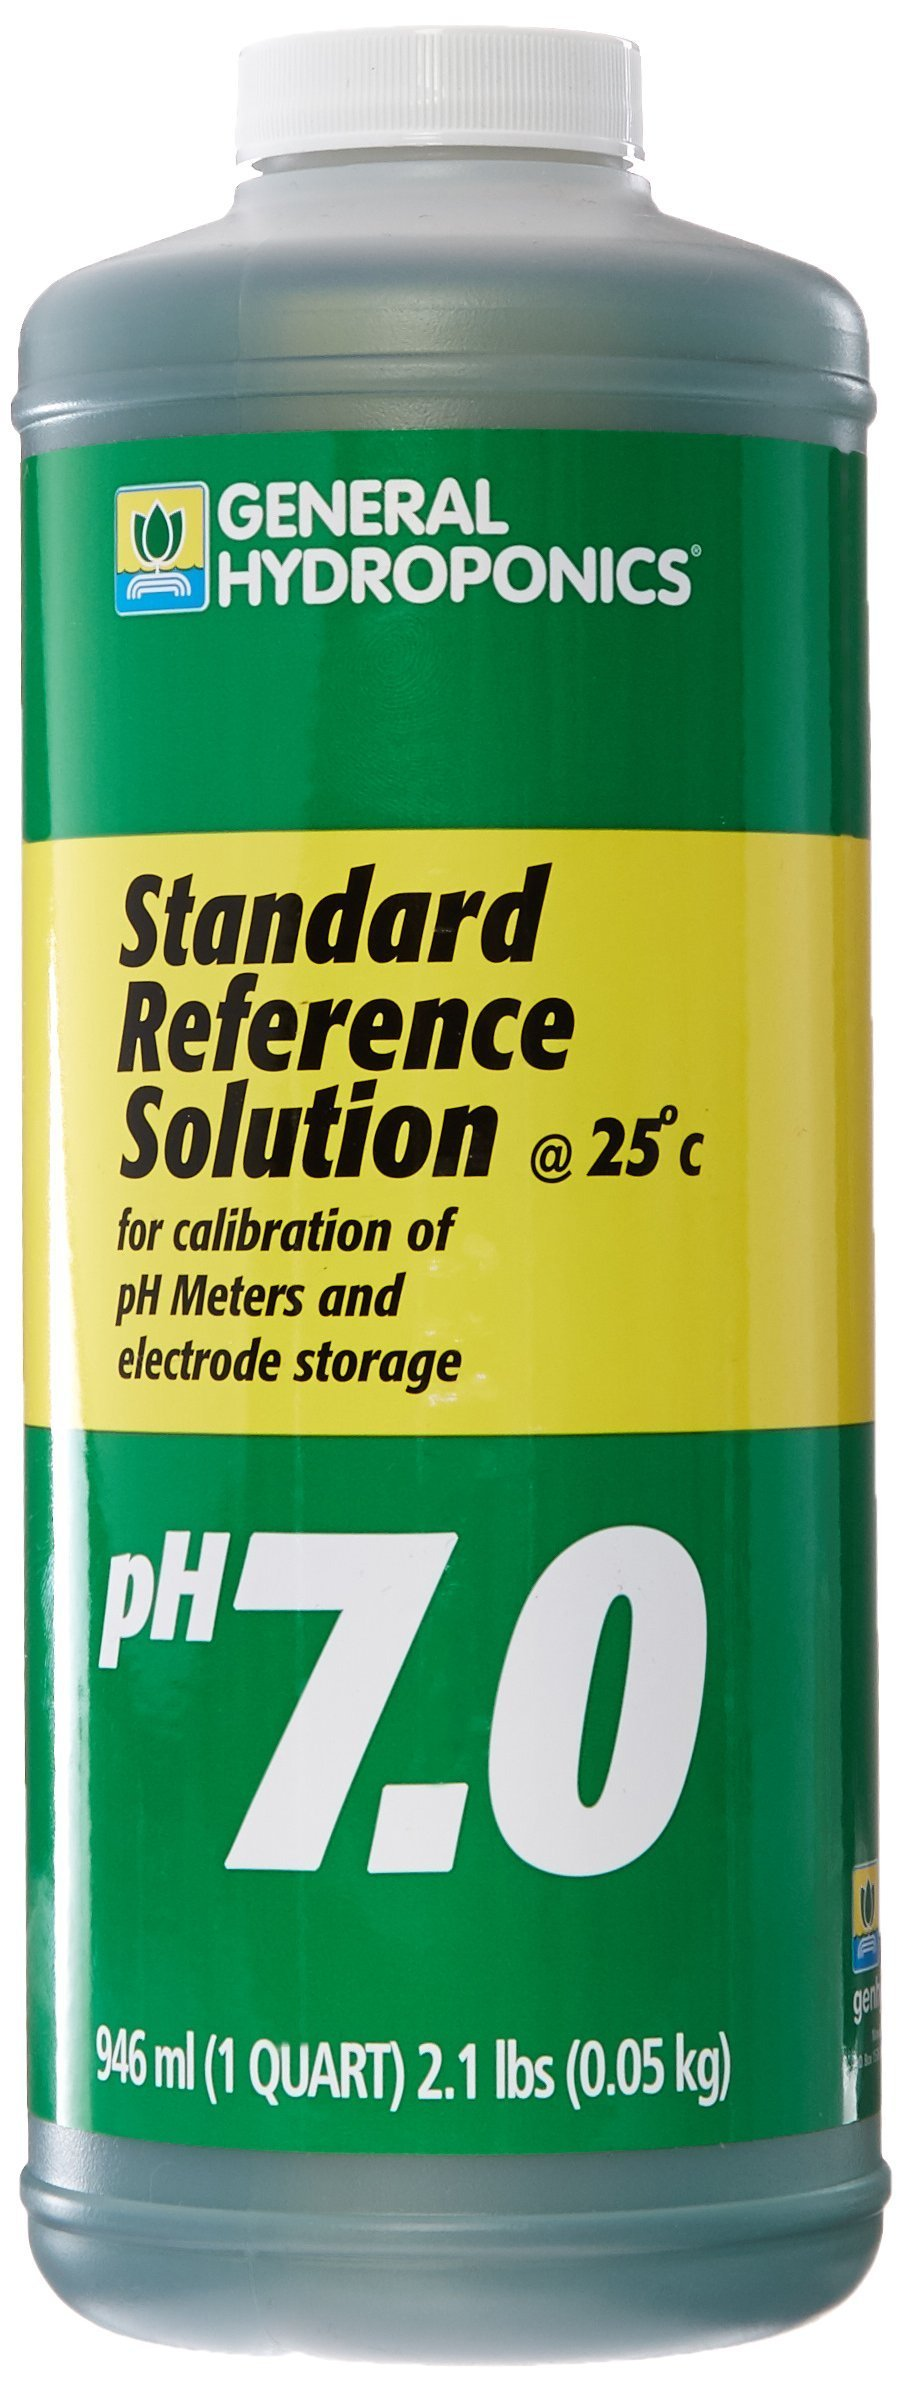 General Hydroponics PH 7 Calibration Solution for Gardening, 1-Quart